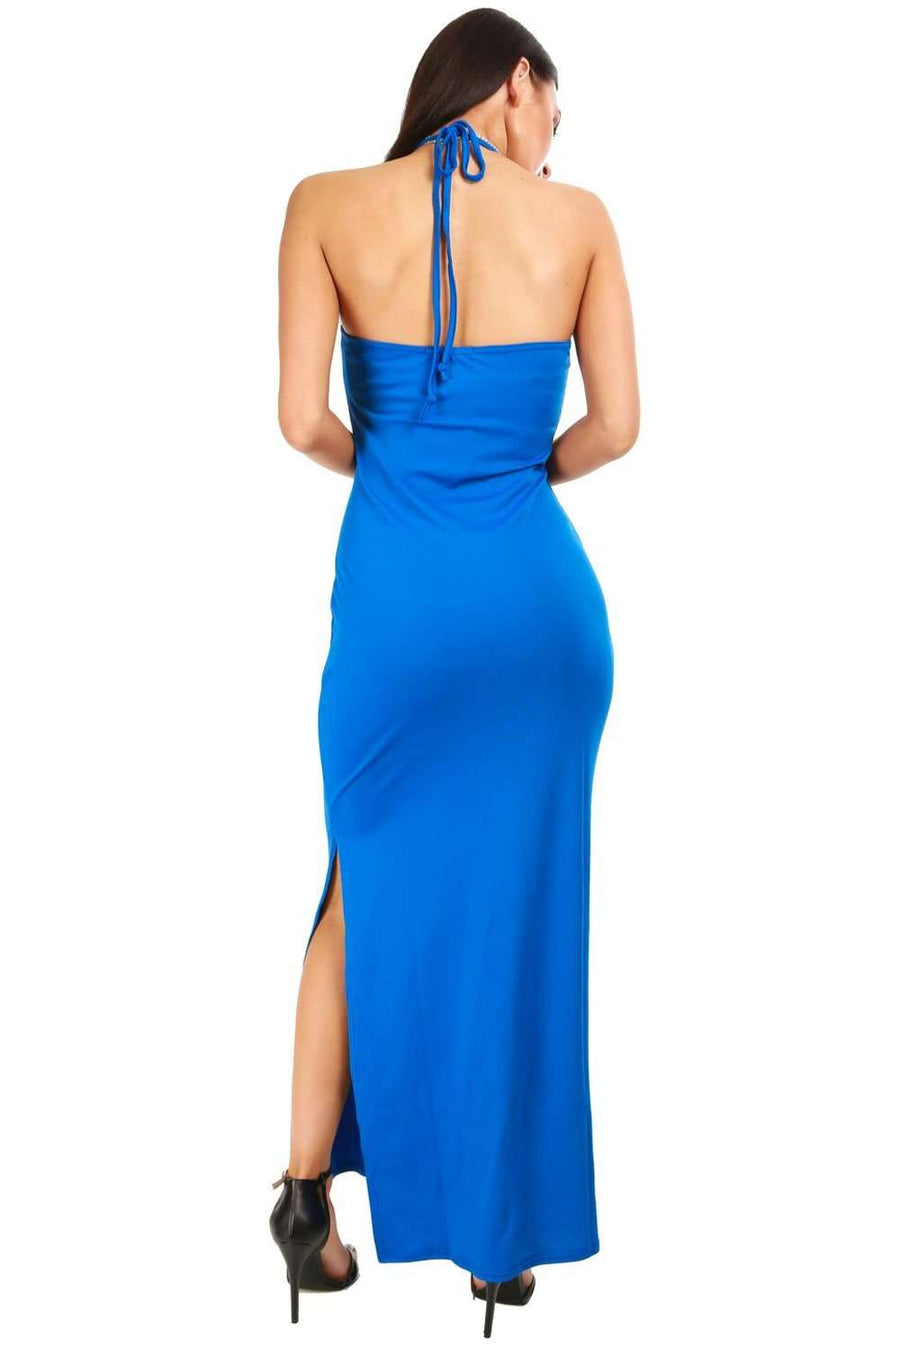 Lorna Halterneck Split Leg Maxi Dress - bejealous-com